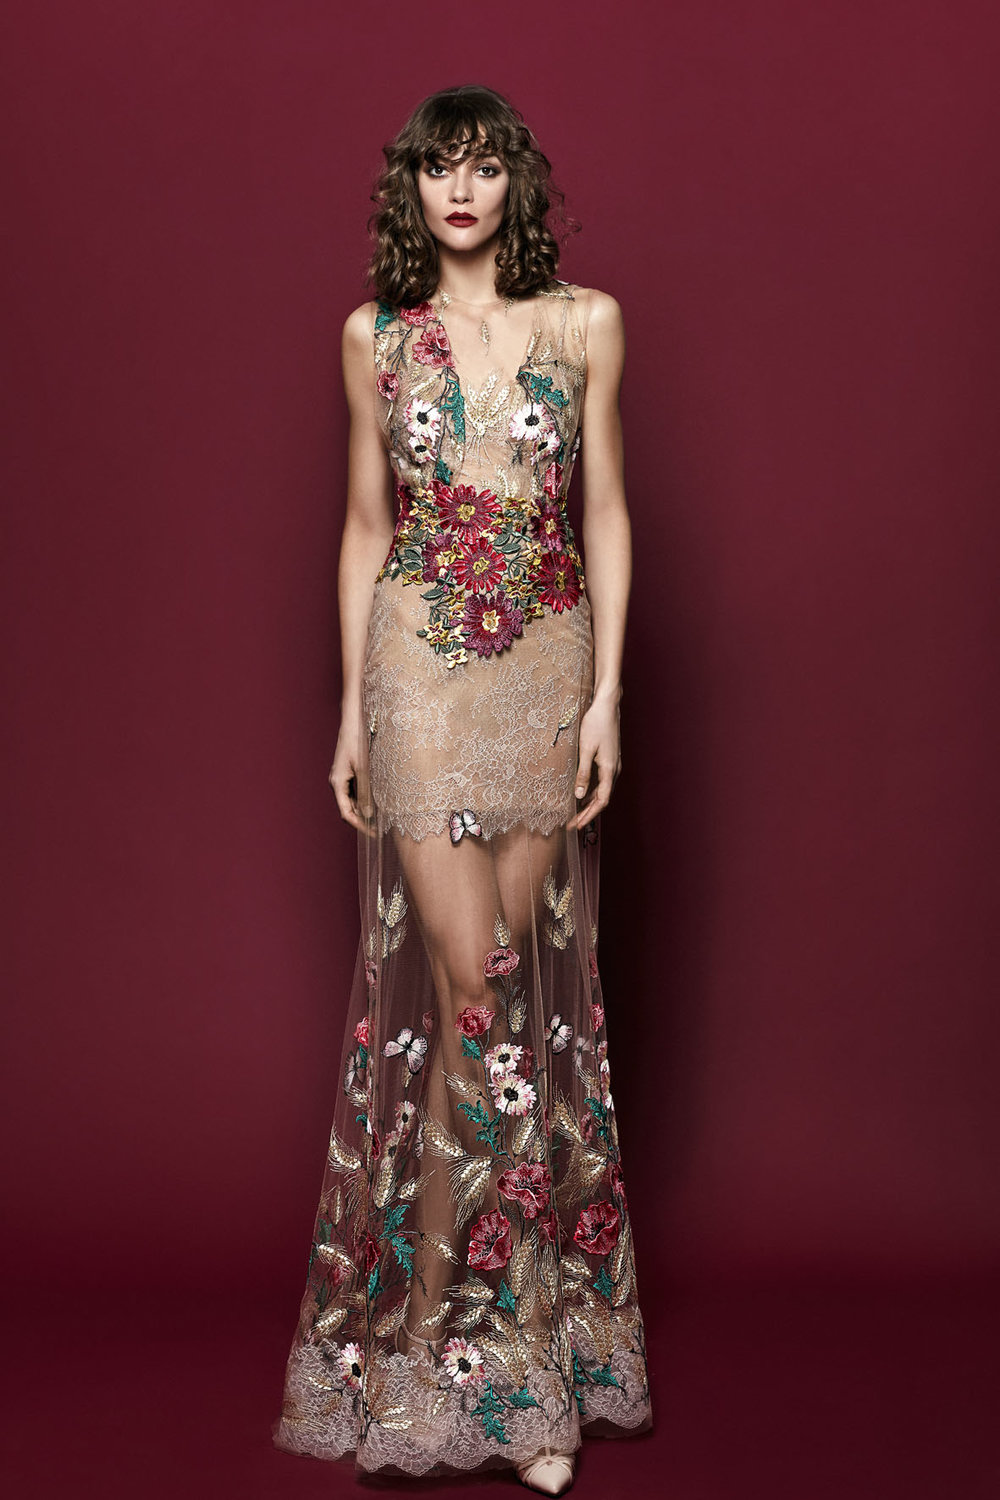 dress-flower-nude-tul-rose-flowers-short-high-fashion-desing-yolan-cris-night-out-yolancris.jpg